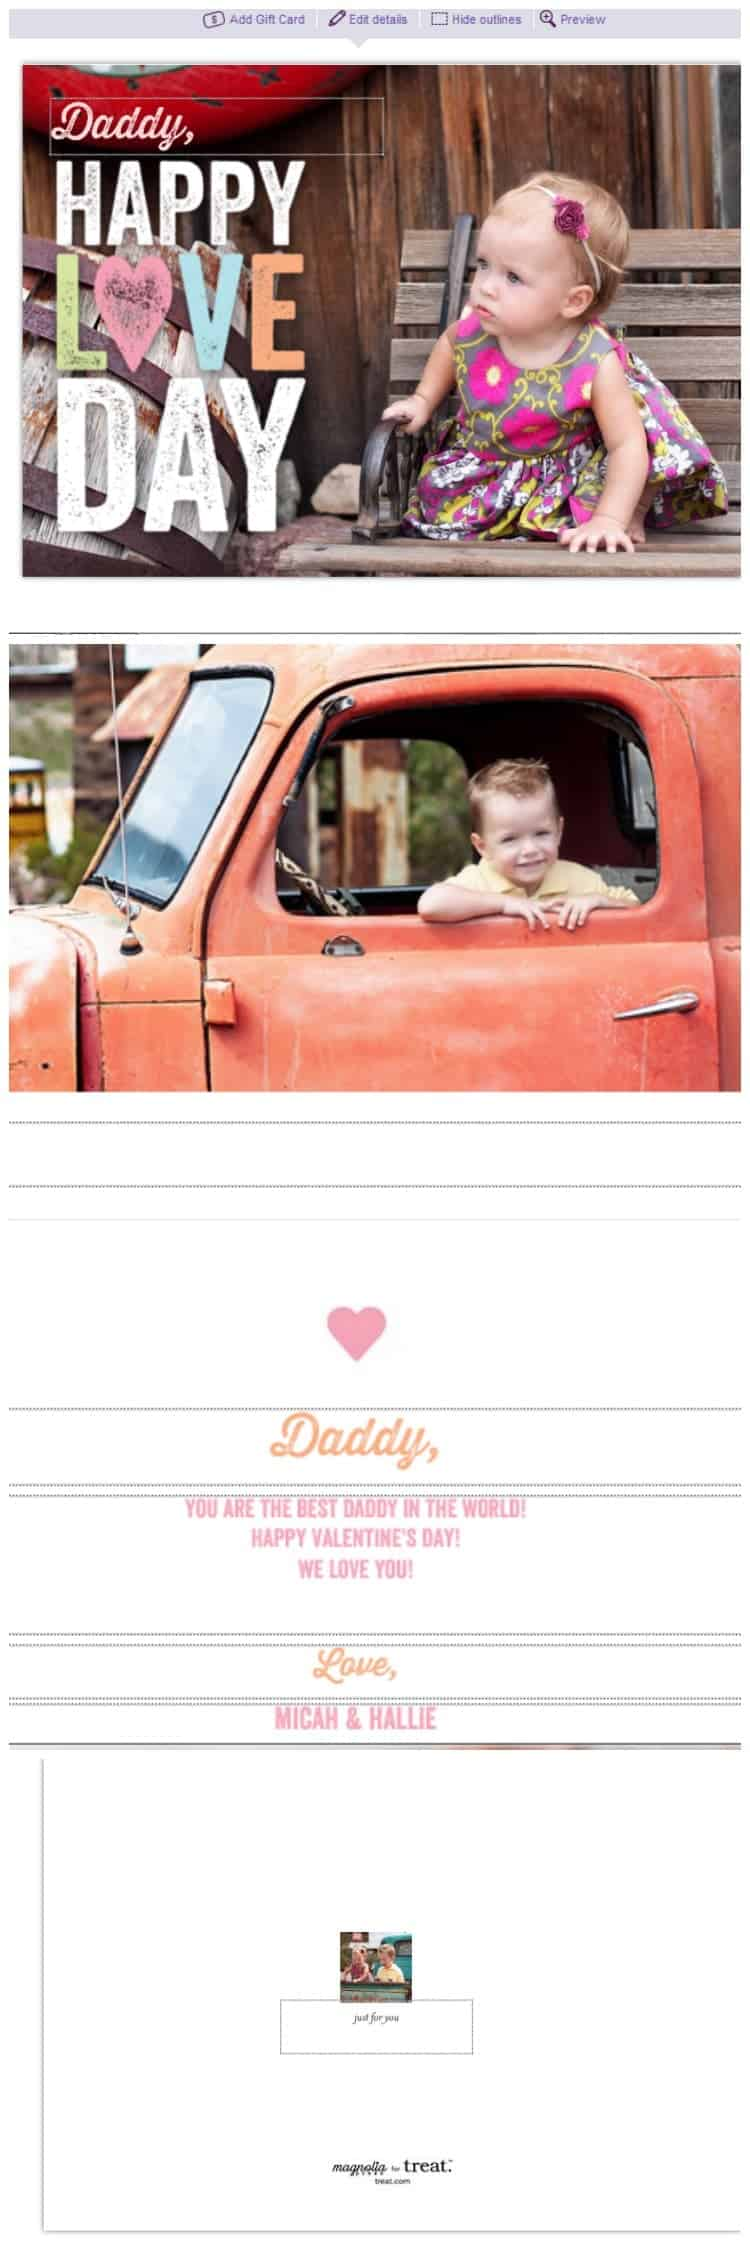 Treat Personalized Greeting Cards Promo Code The Pinning Mama